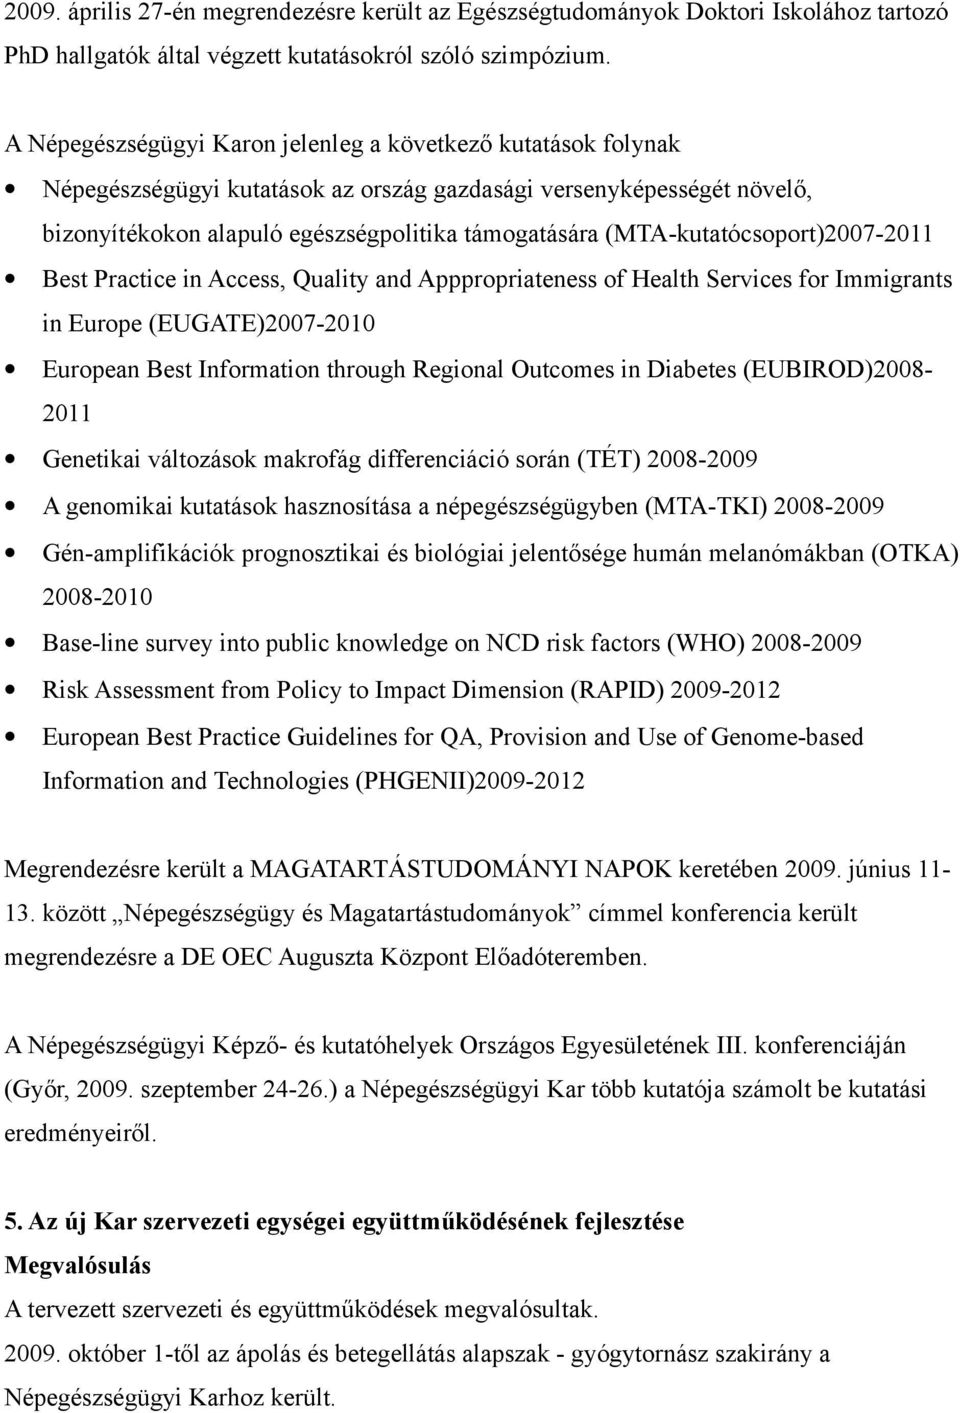 (MTA-kutatócsoport)2007-2011 Best Practice in Access, Quality and Apppropriateness of Health Services for Immigrants in Europe (EUGATE)2007-2010 European Best Information through Regional Outcomes in